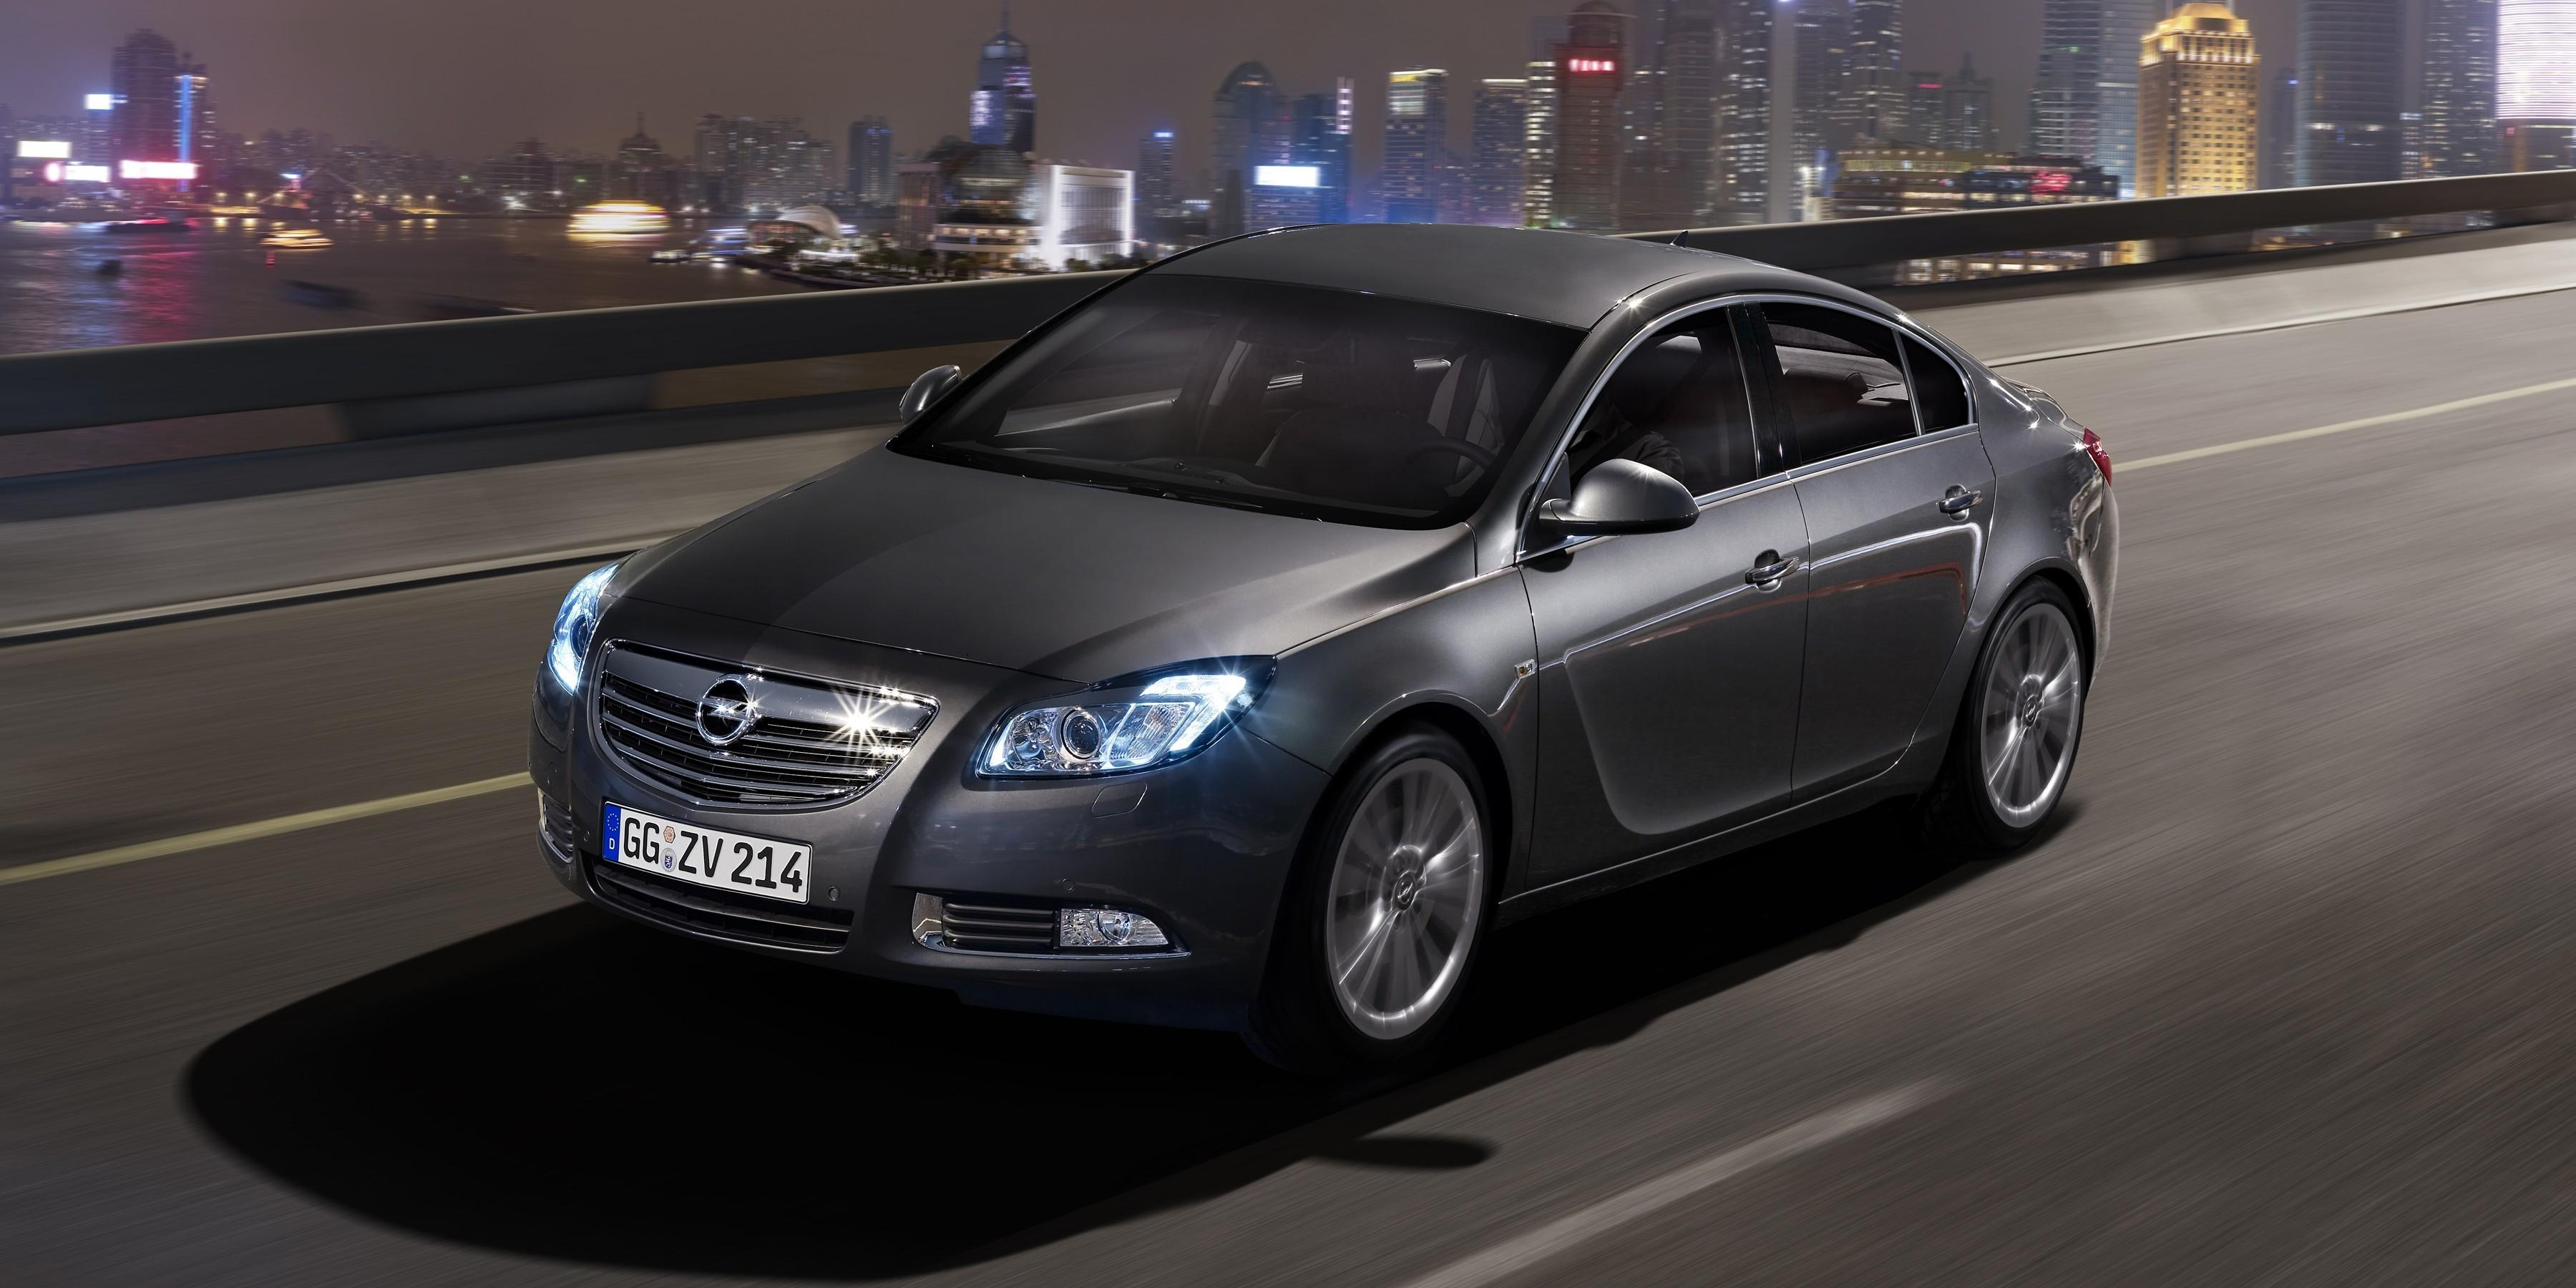 Opel Insignia Wallpapers Resolution: 3600x1800